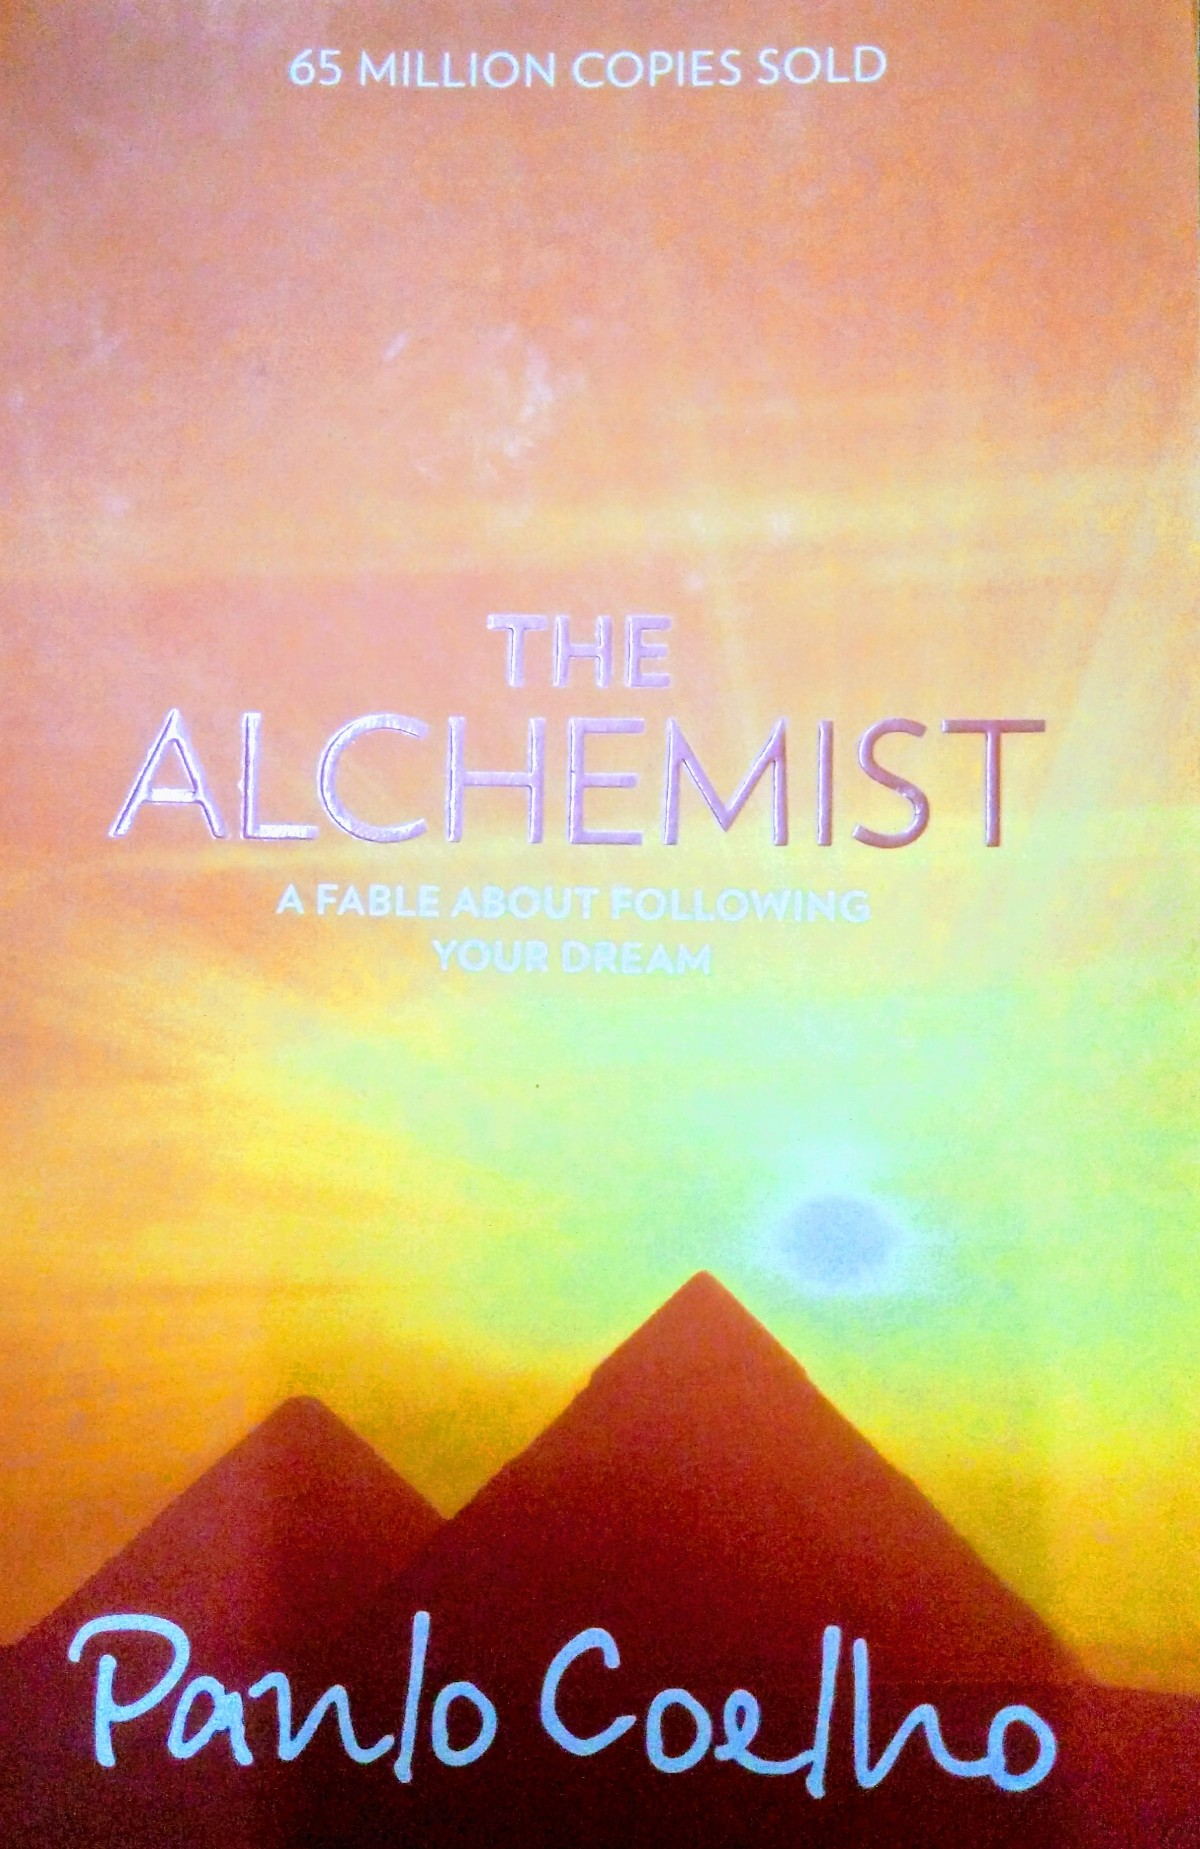 The Alchemist (By Paulo Coelho) – Book Review